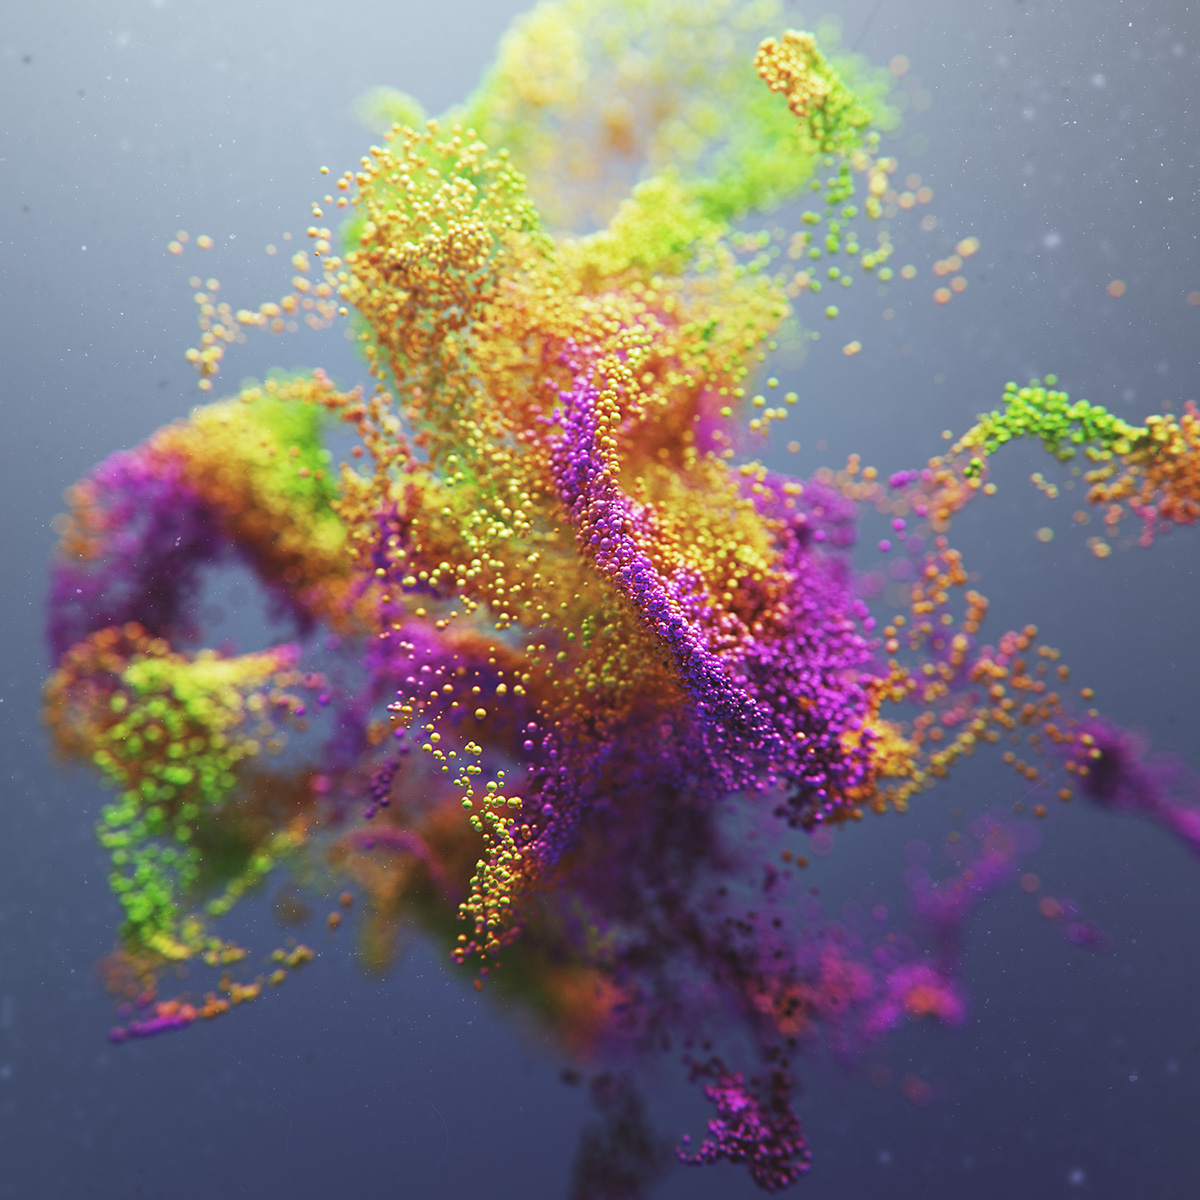 OTOY Forums • View topic - Mograph Color Shader - More than 2 colors?